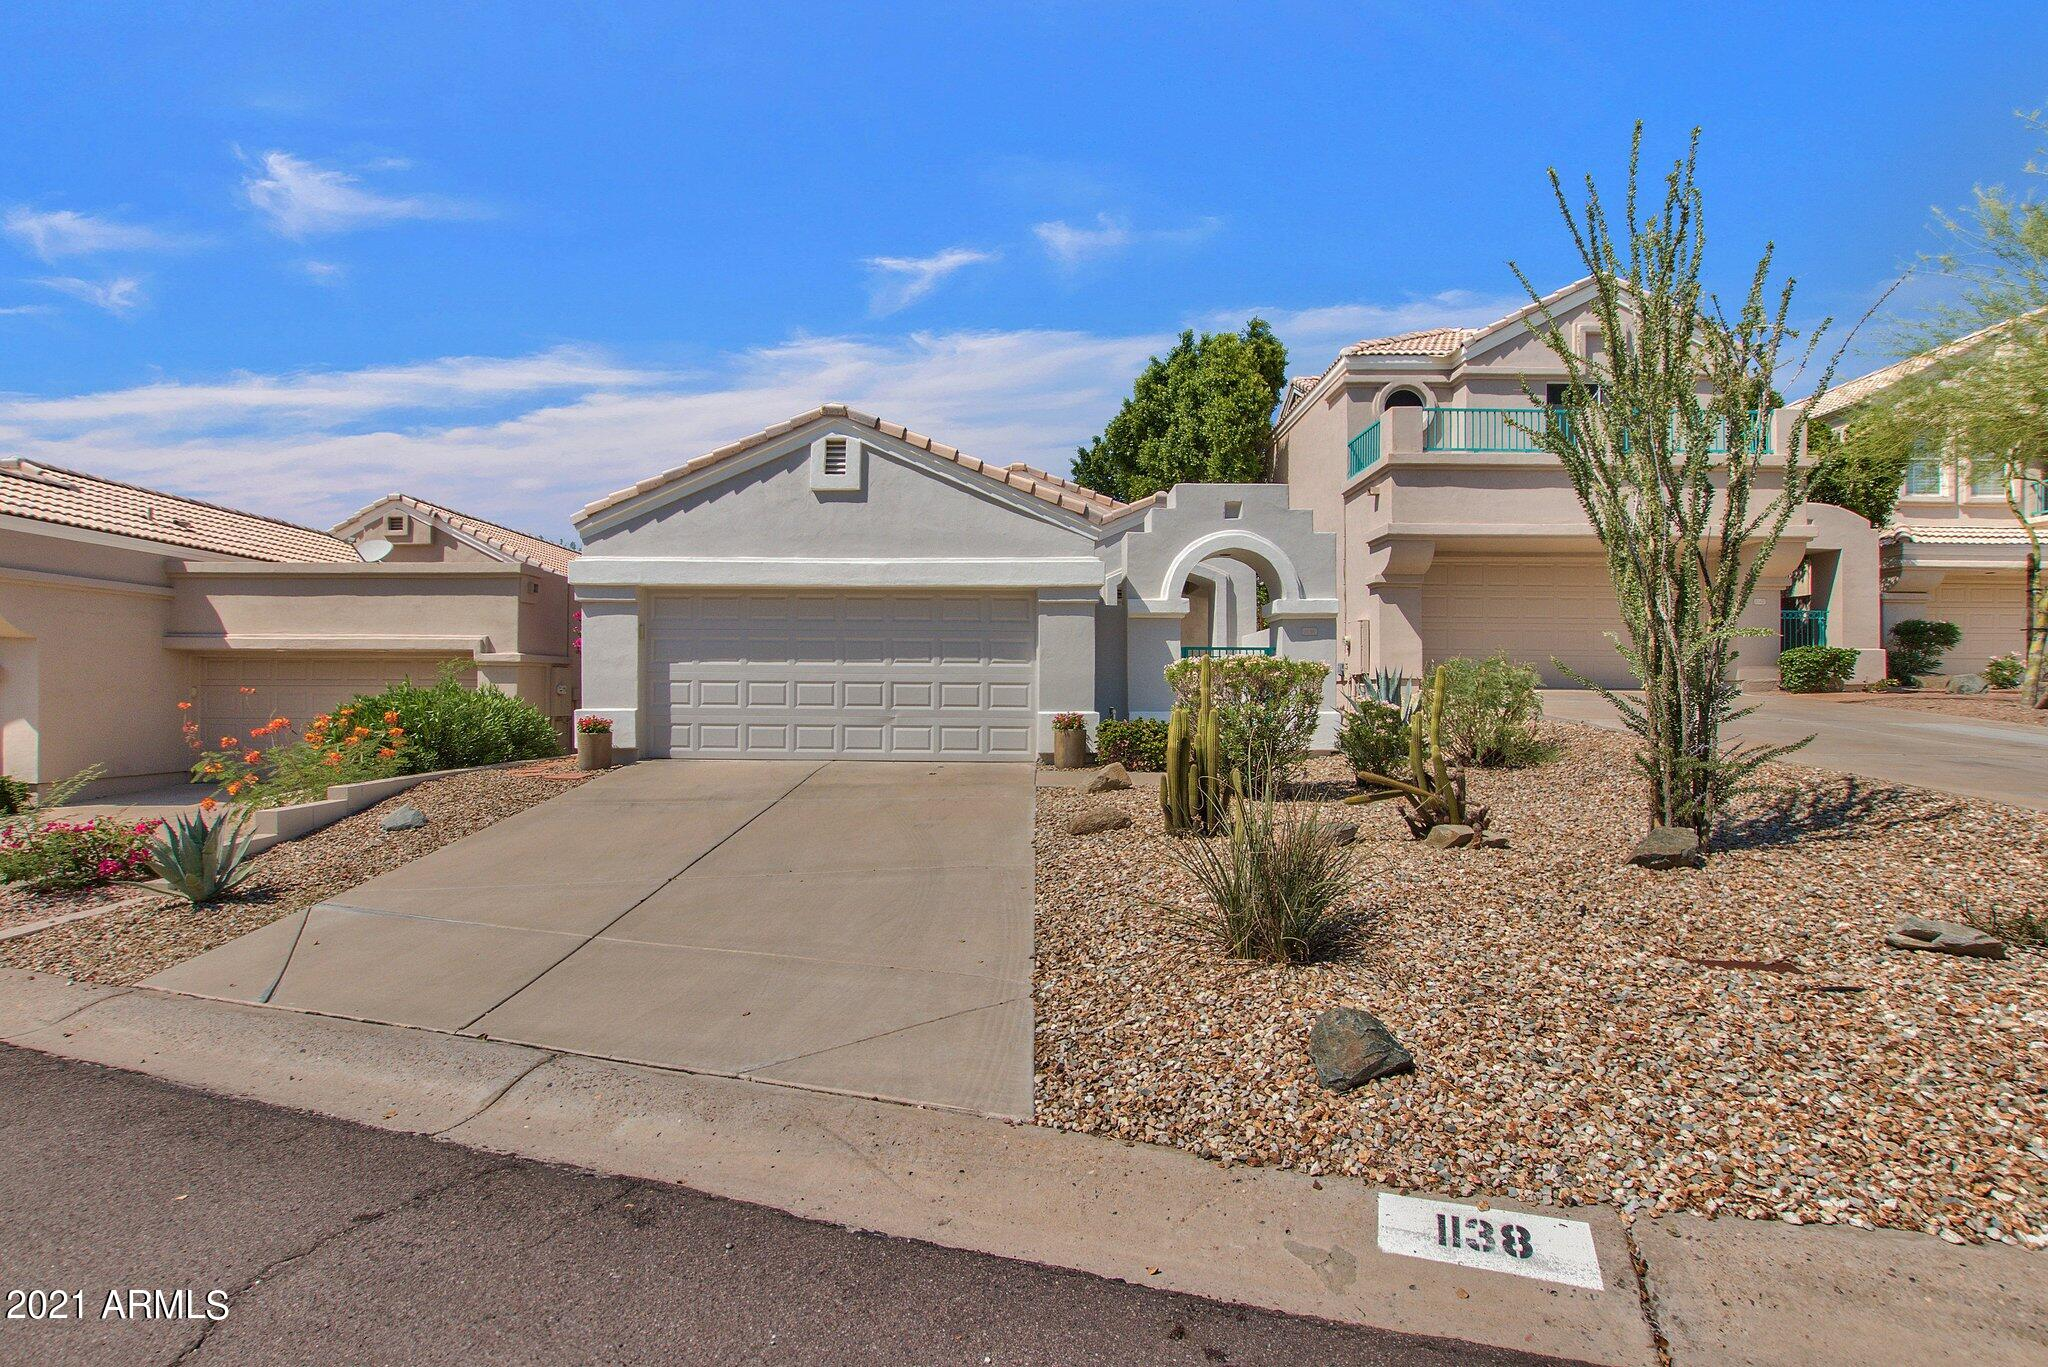 1254 SqFt House In Ahwatukee Foothills